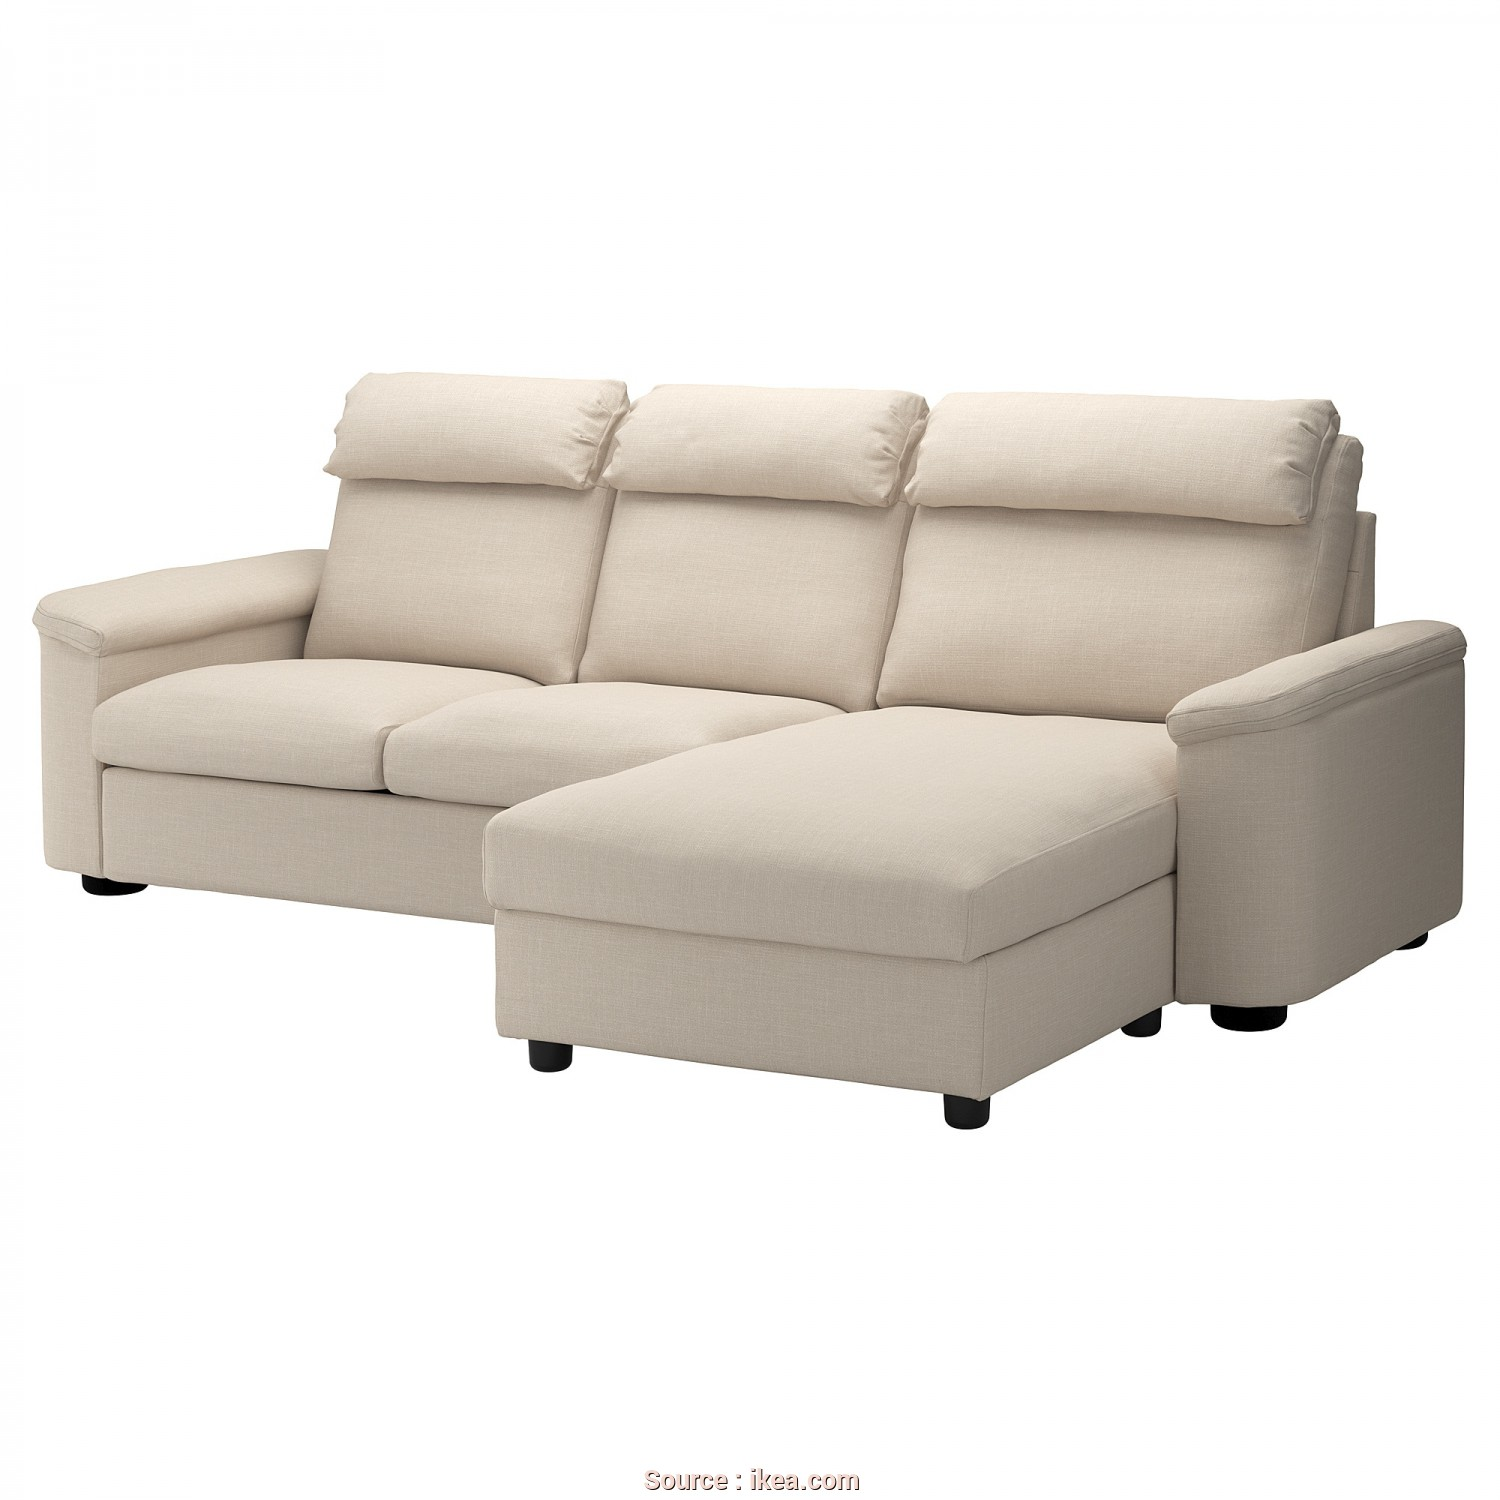 Backabro Sofa, With Chaise Longue £725 Ikea, Esotico IKEA LIDHULT 3-Seat Sofa, Cover Is Easy To Keep Clean Since It Is